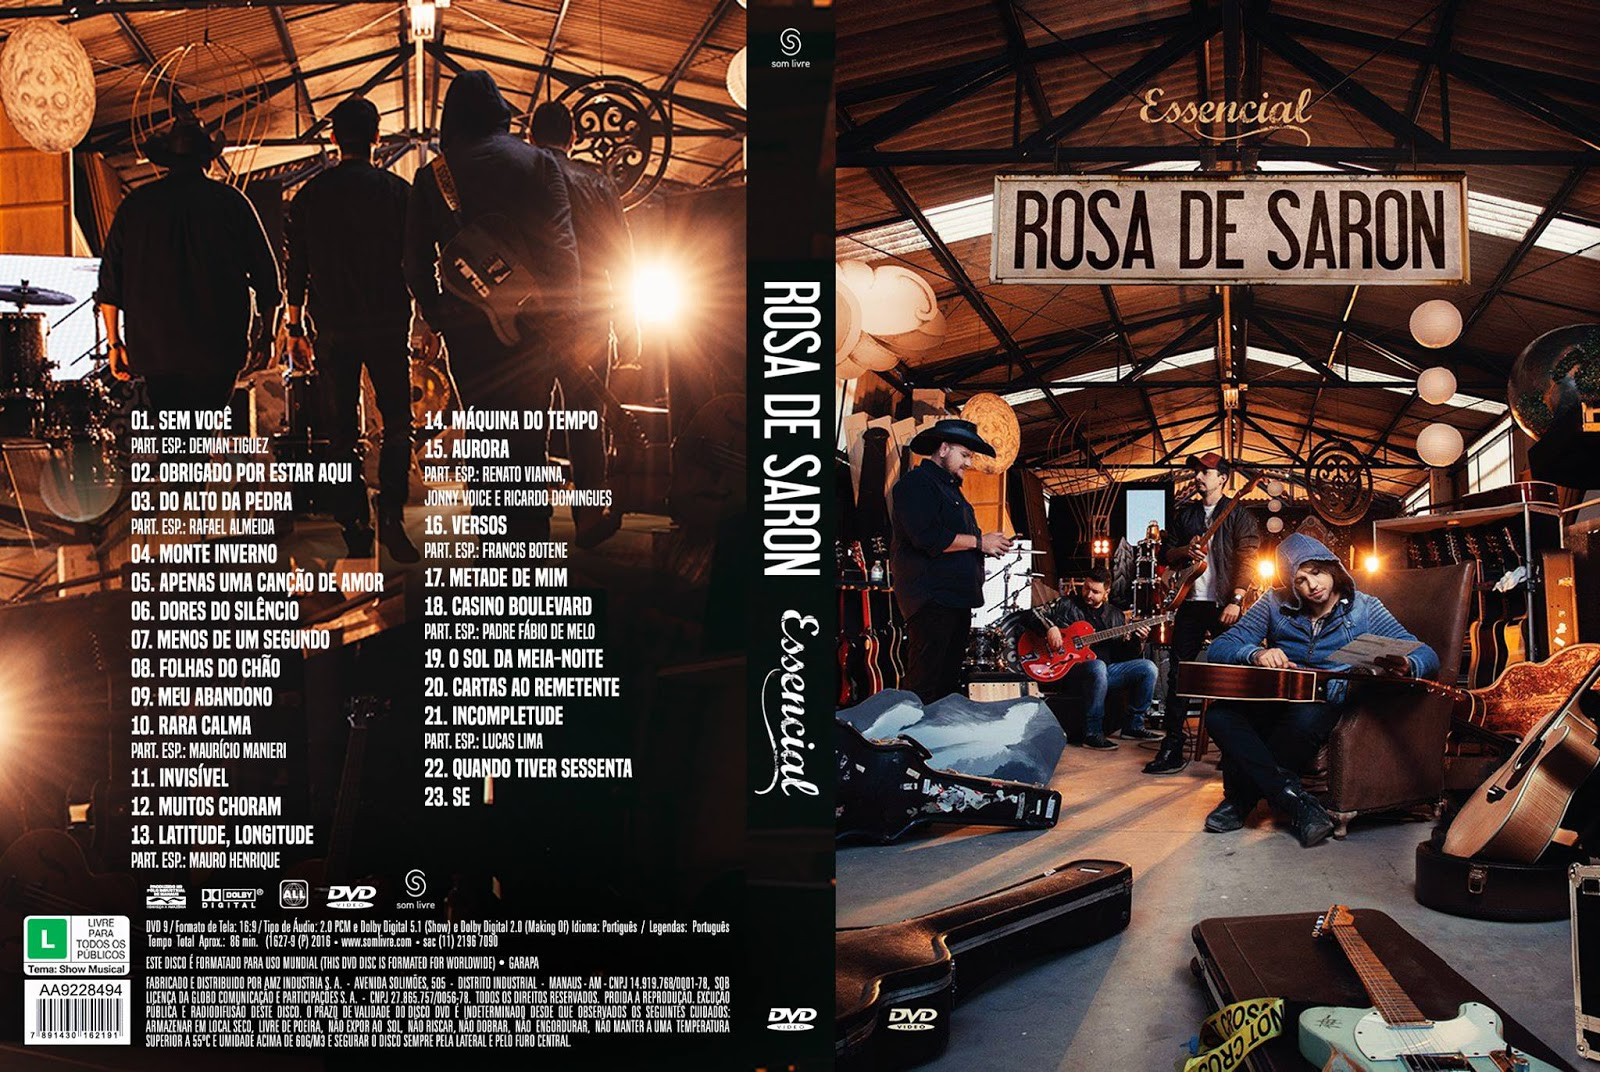 Download Rosa de Saron Essencial DVDRip Download Rosa de Saron Essencial DVDRip 2016 Rosa 2BDe 2BSaron 2BEssencial 2BDVD R 2B2016 2BXANDAODOWNLOAD